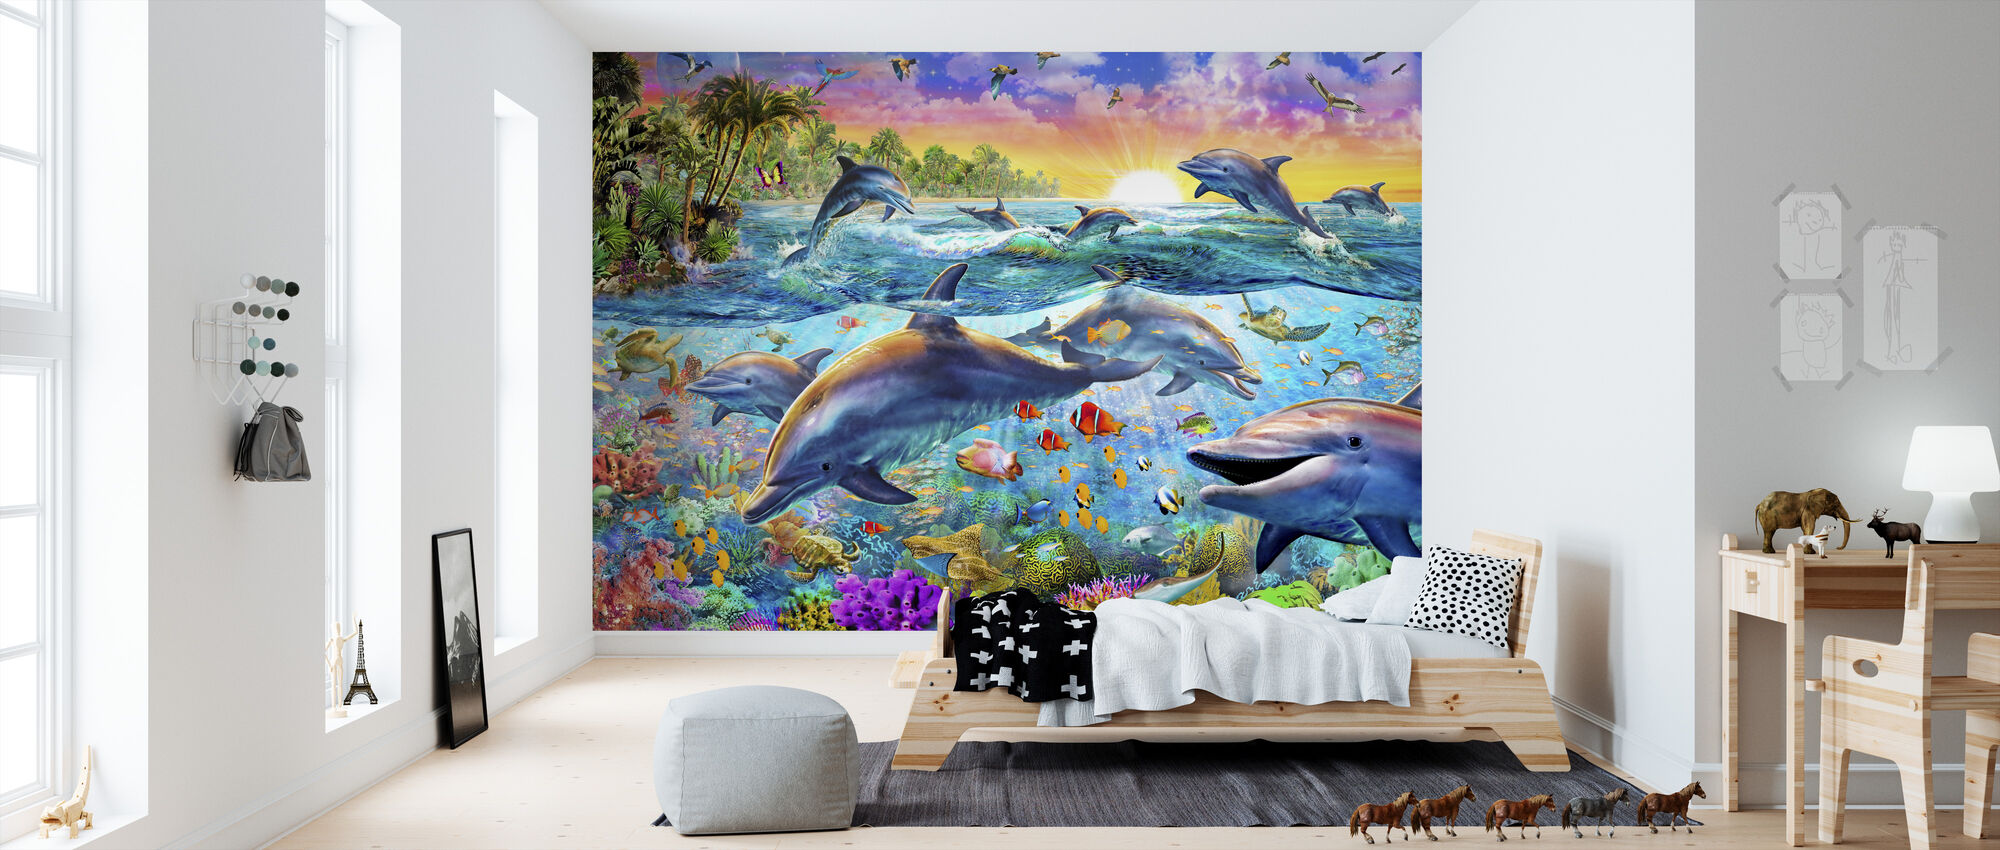 Tropical Dolphins - Wallpaper - Kids Room